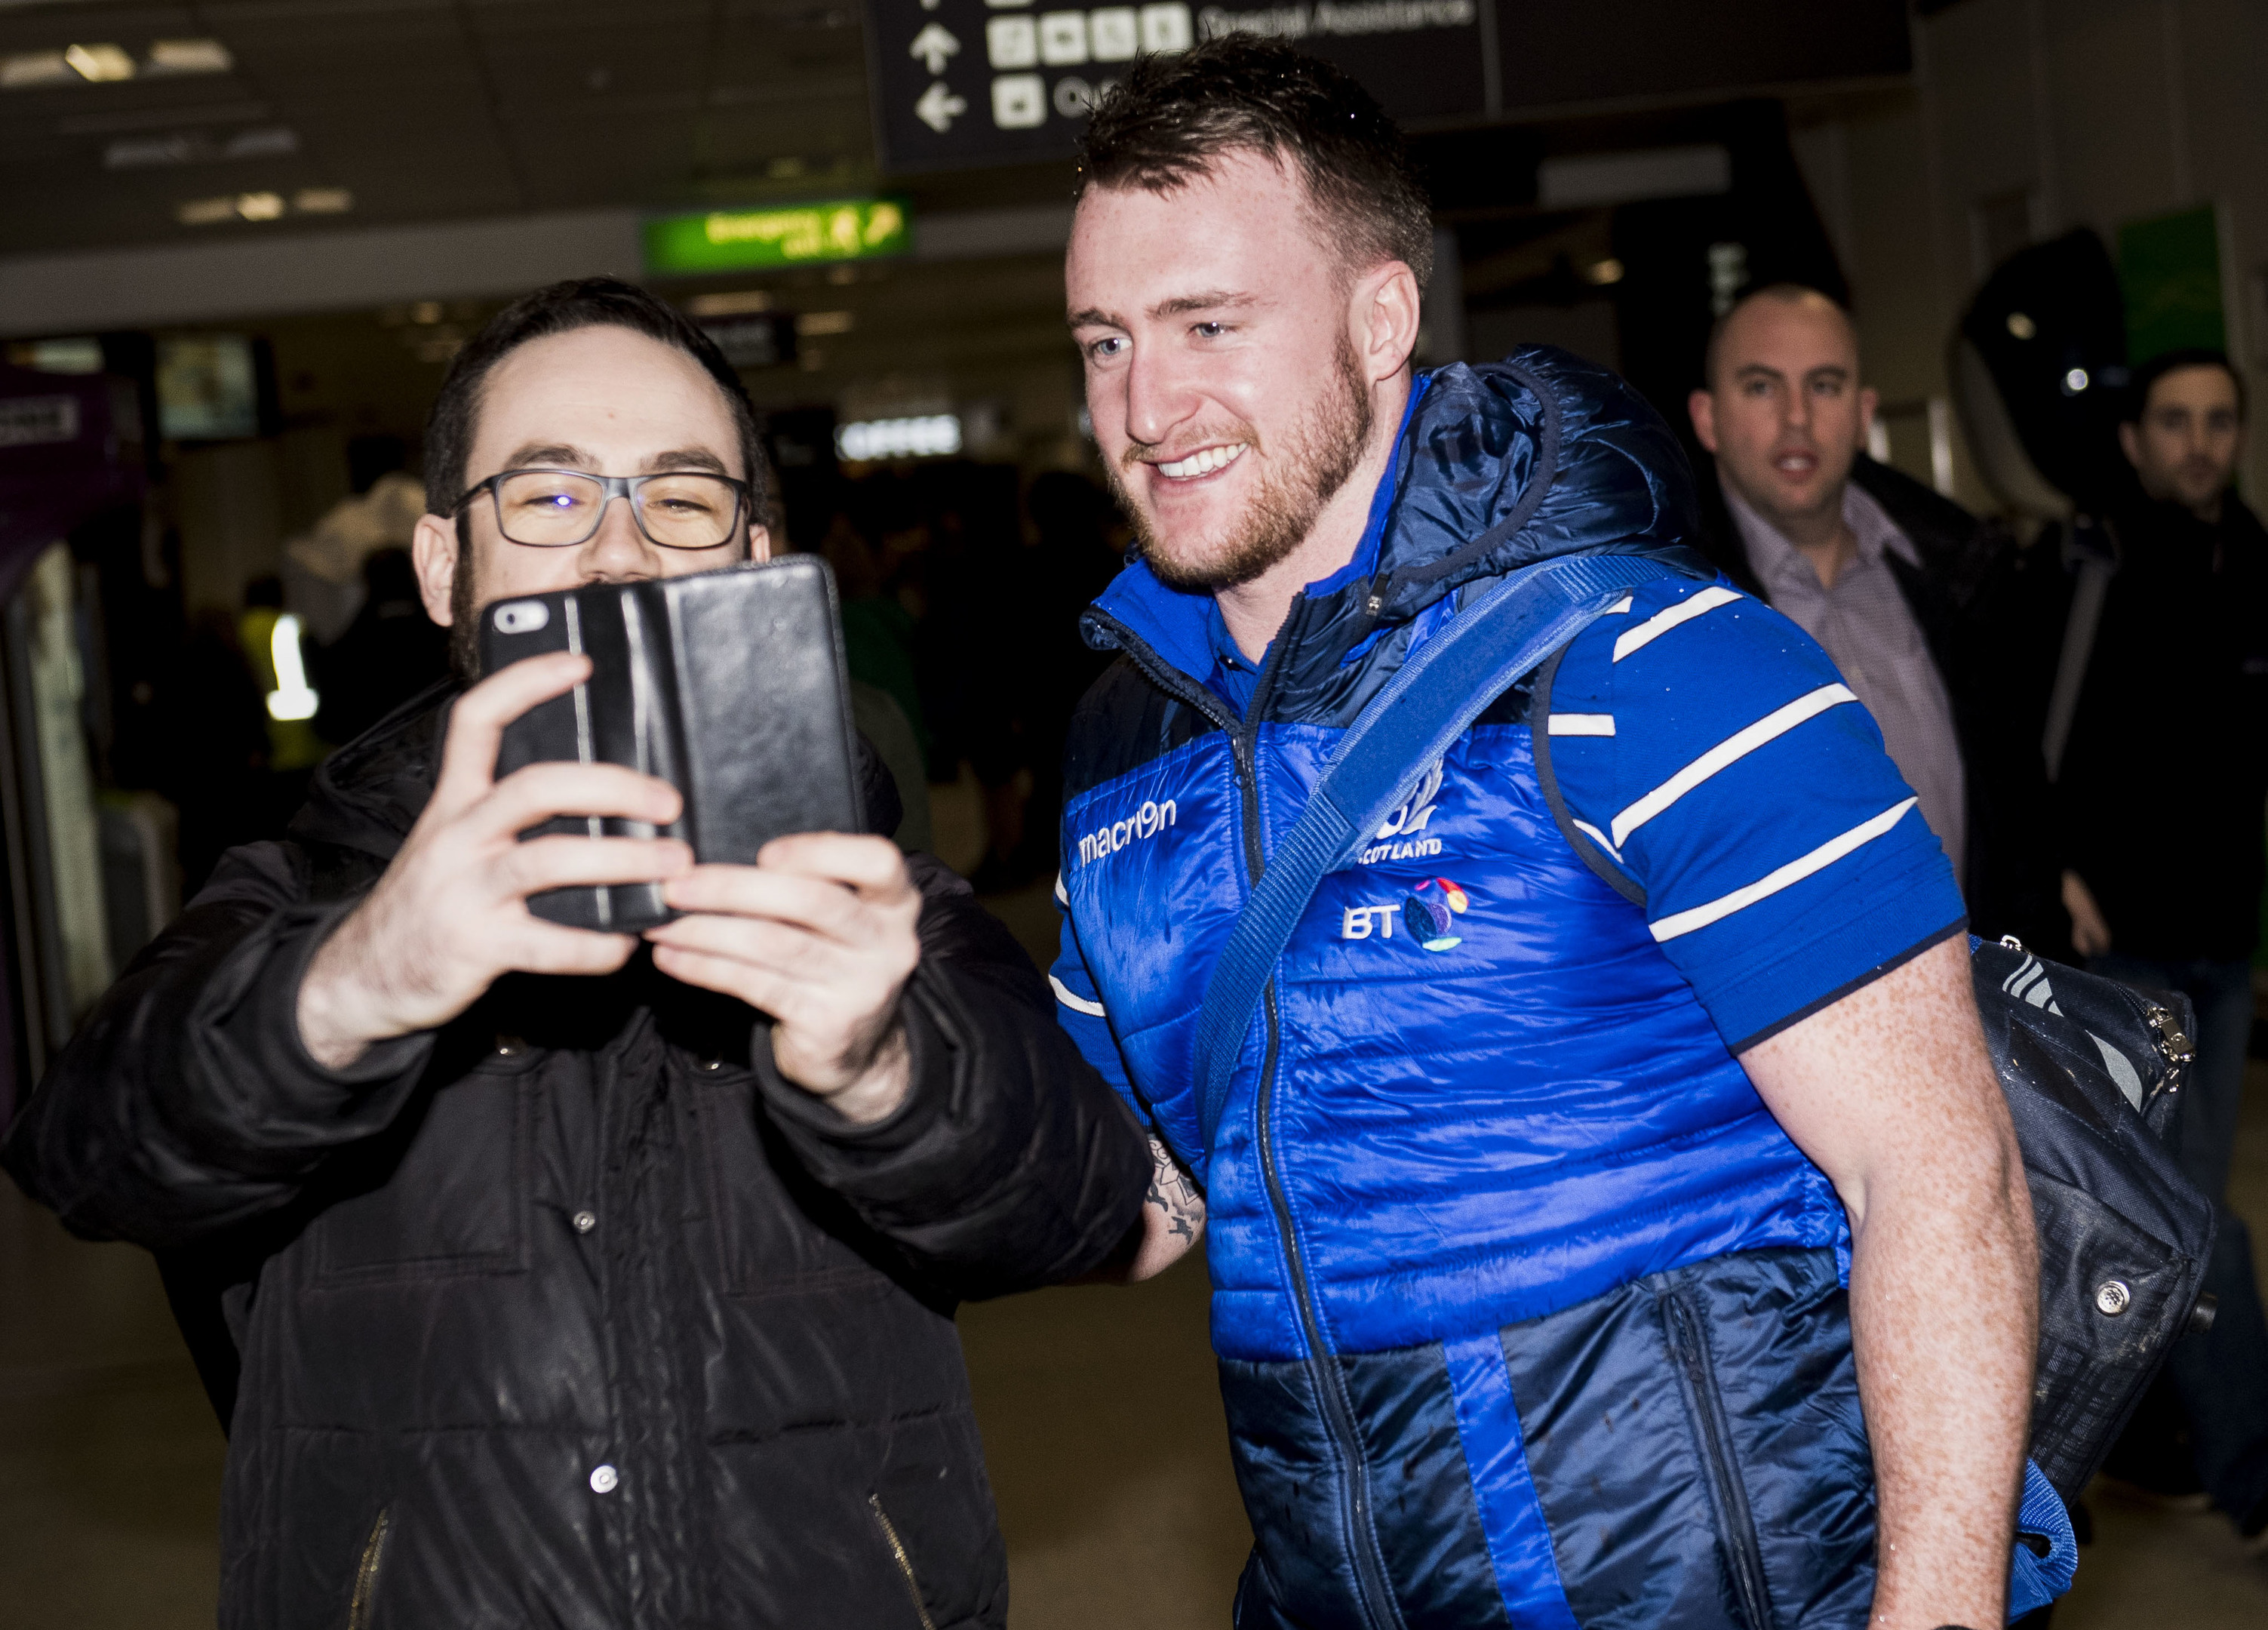 Stuart Hogg, who wins his 50th cap against France, shares a selfie with a fan at Edinburgh Airport.